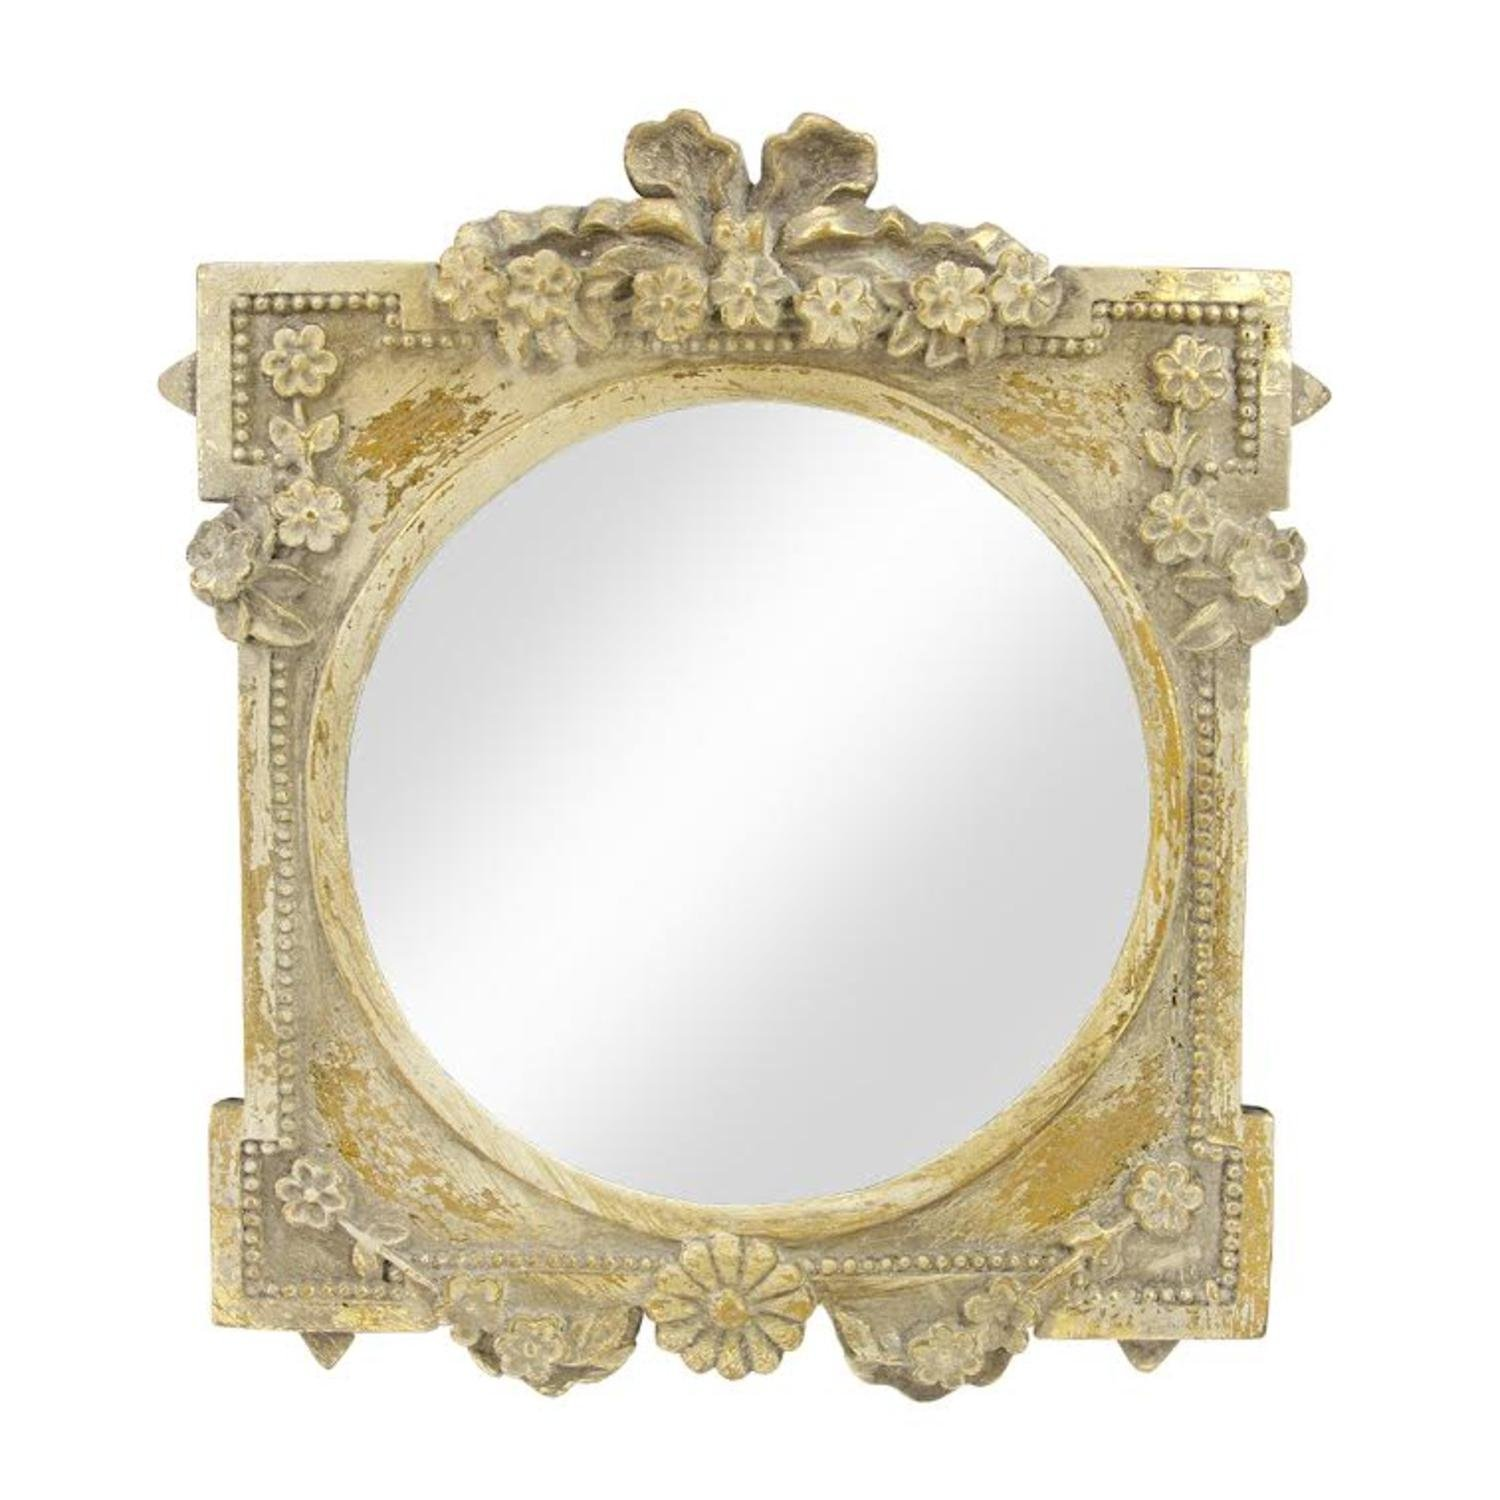 7b556b8e5a59 City Chic Decorative Round Antique Style Gold Wall Mirror with Floral  Accented Square Frame 10